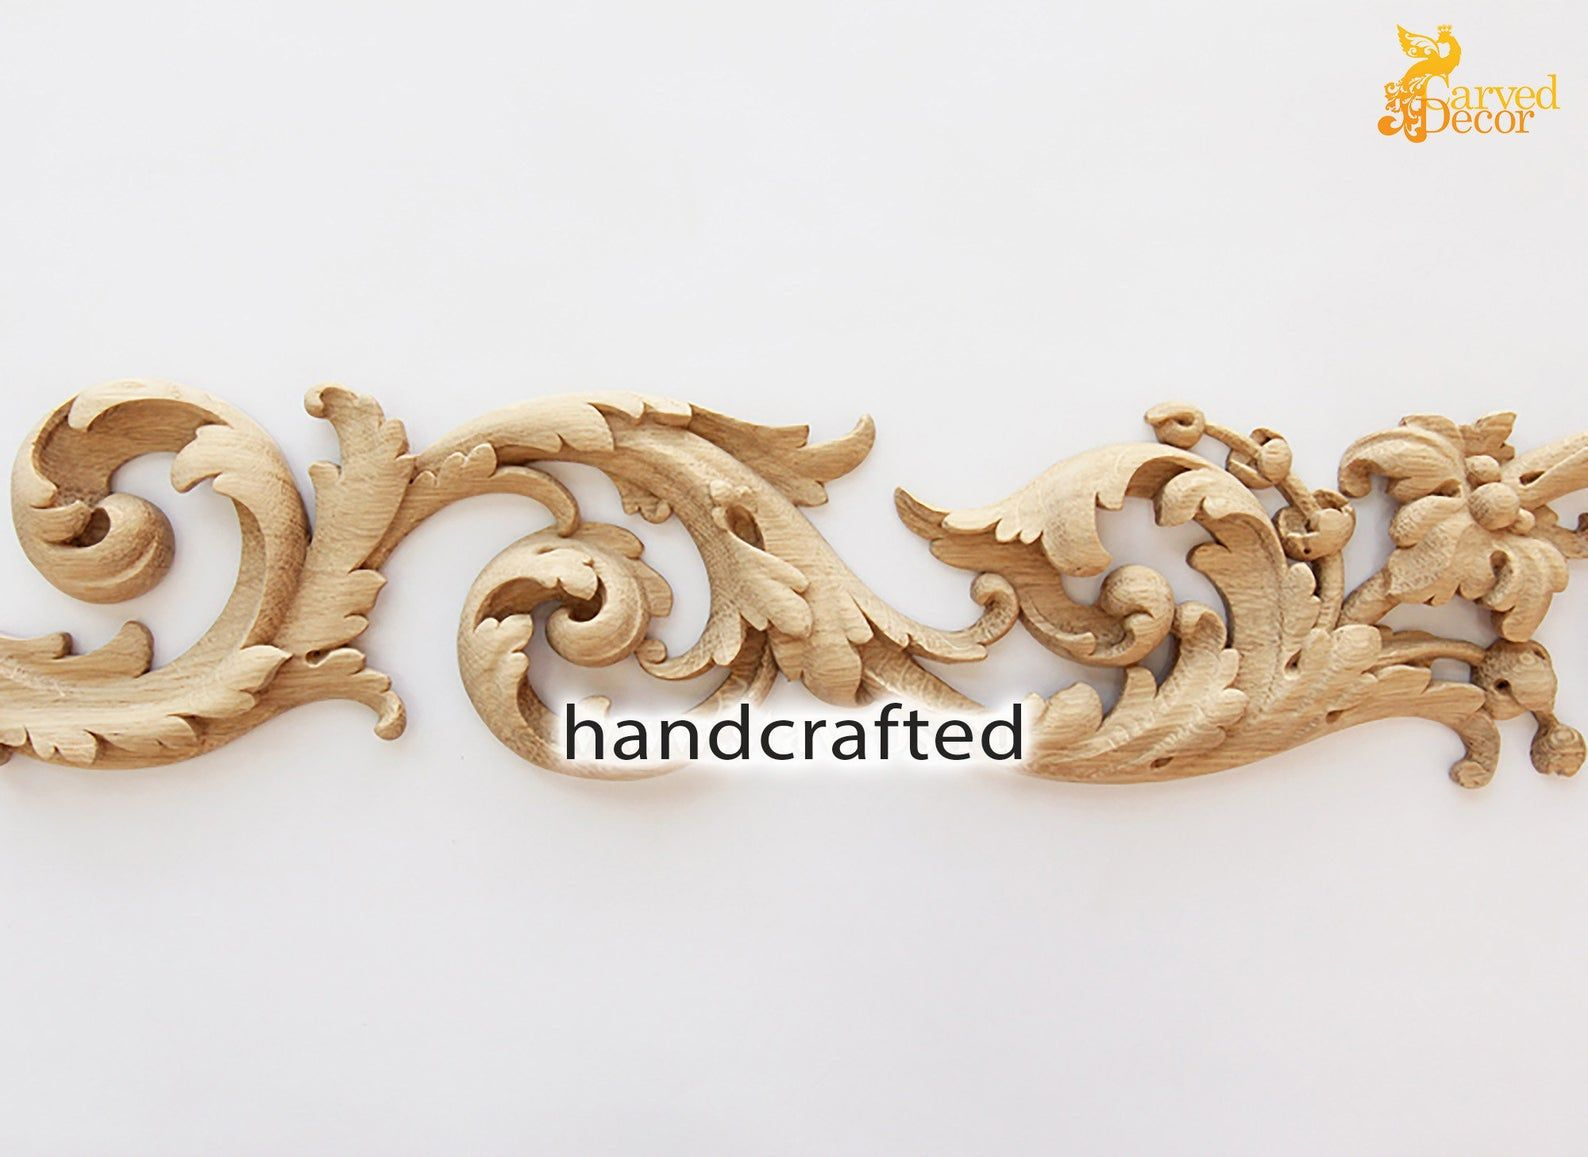 Unique Appliques For Doors For Kitchen Cabinets 10 Meters Etsy In 2020 Unique Applique Wood Decor Kitchen Cabinets